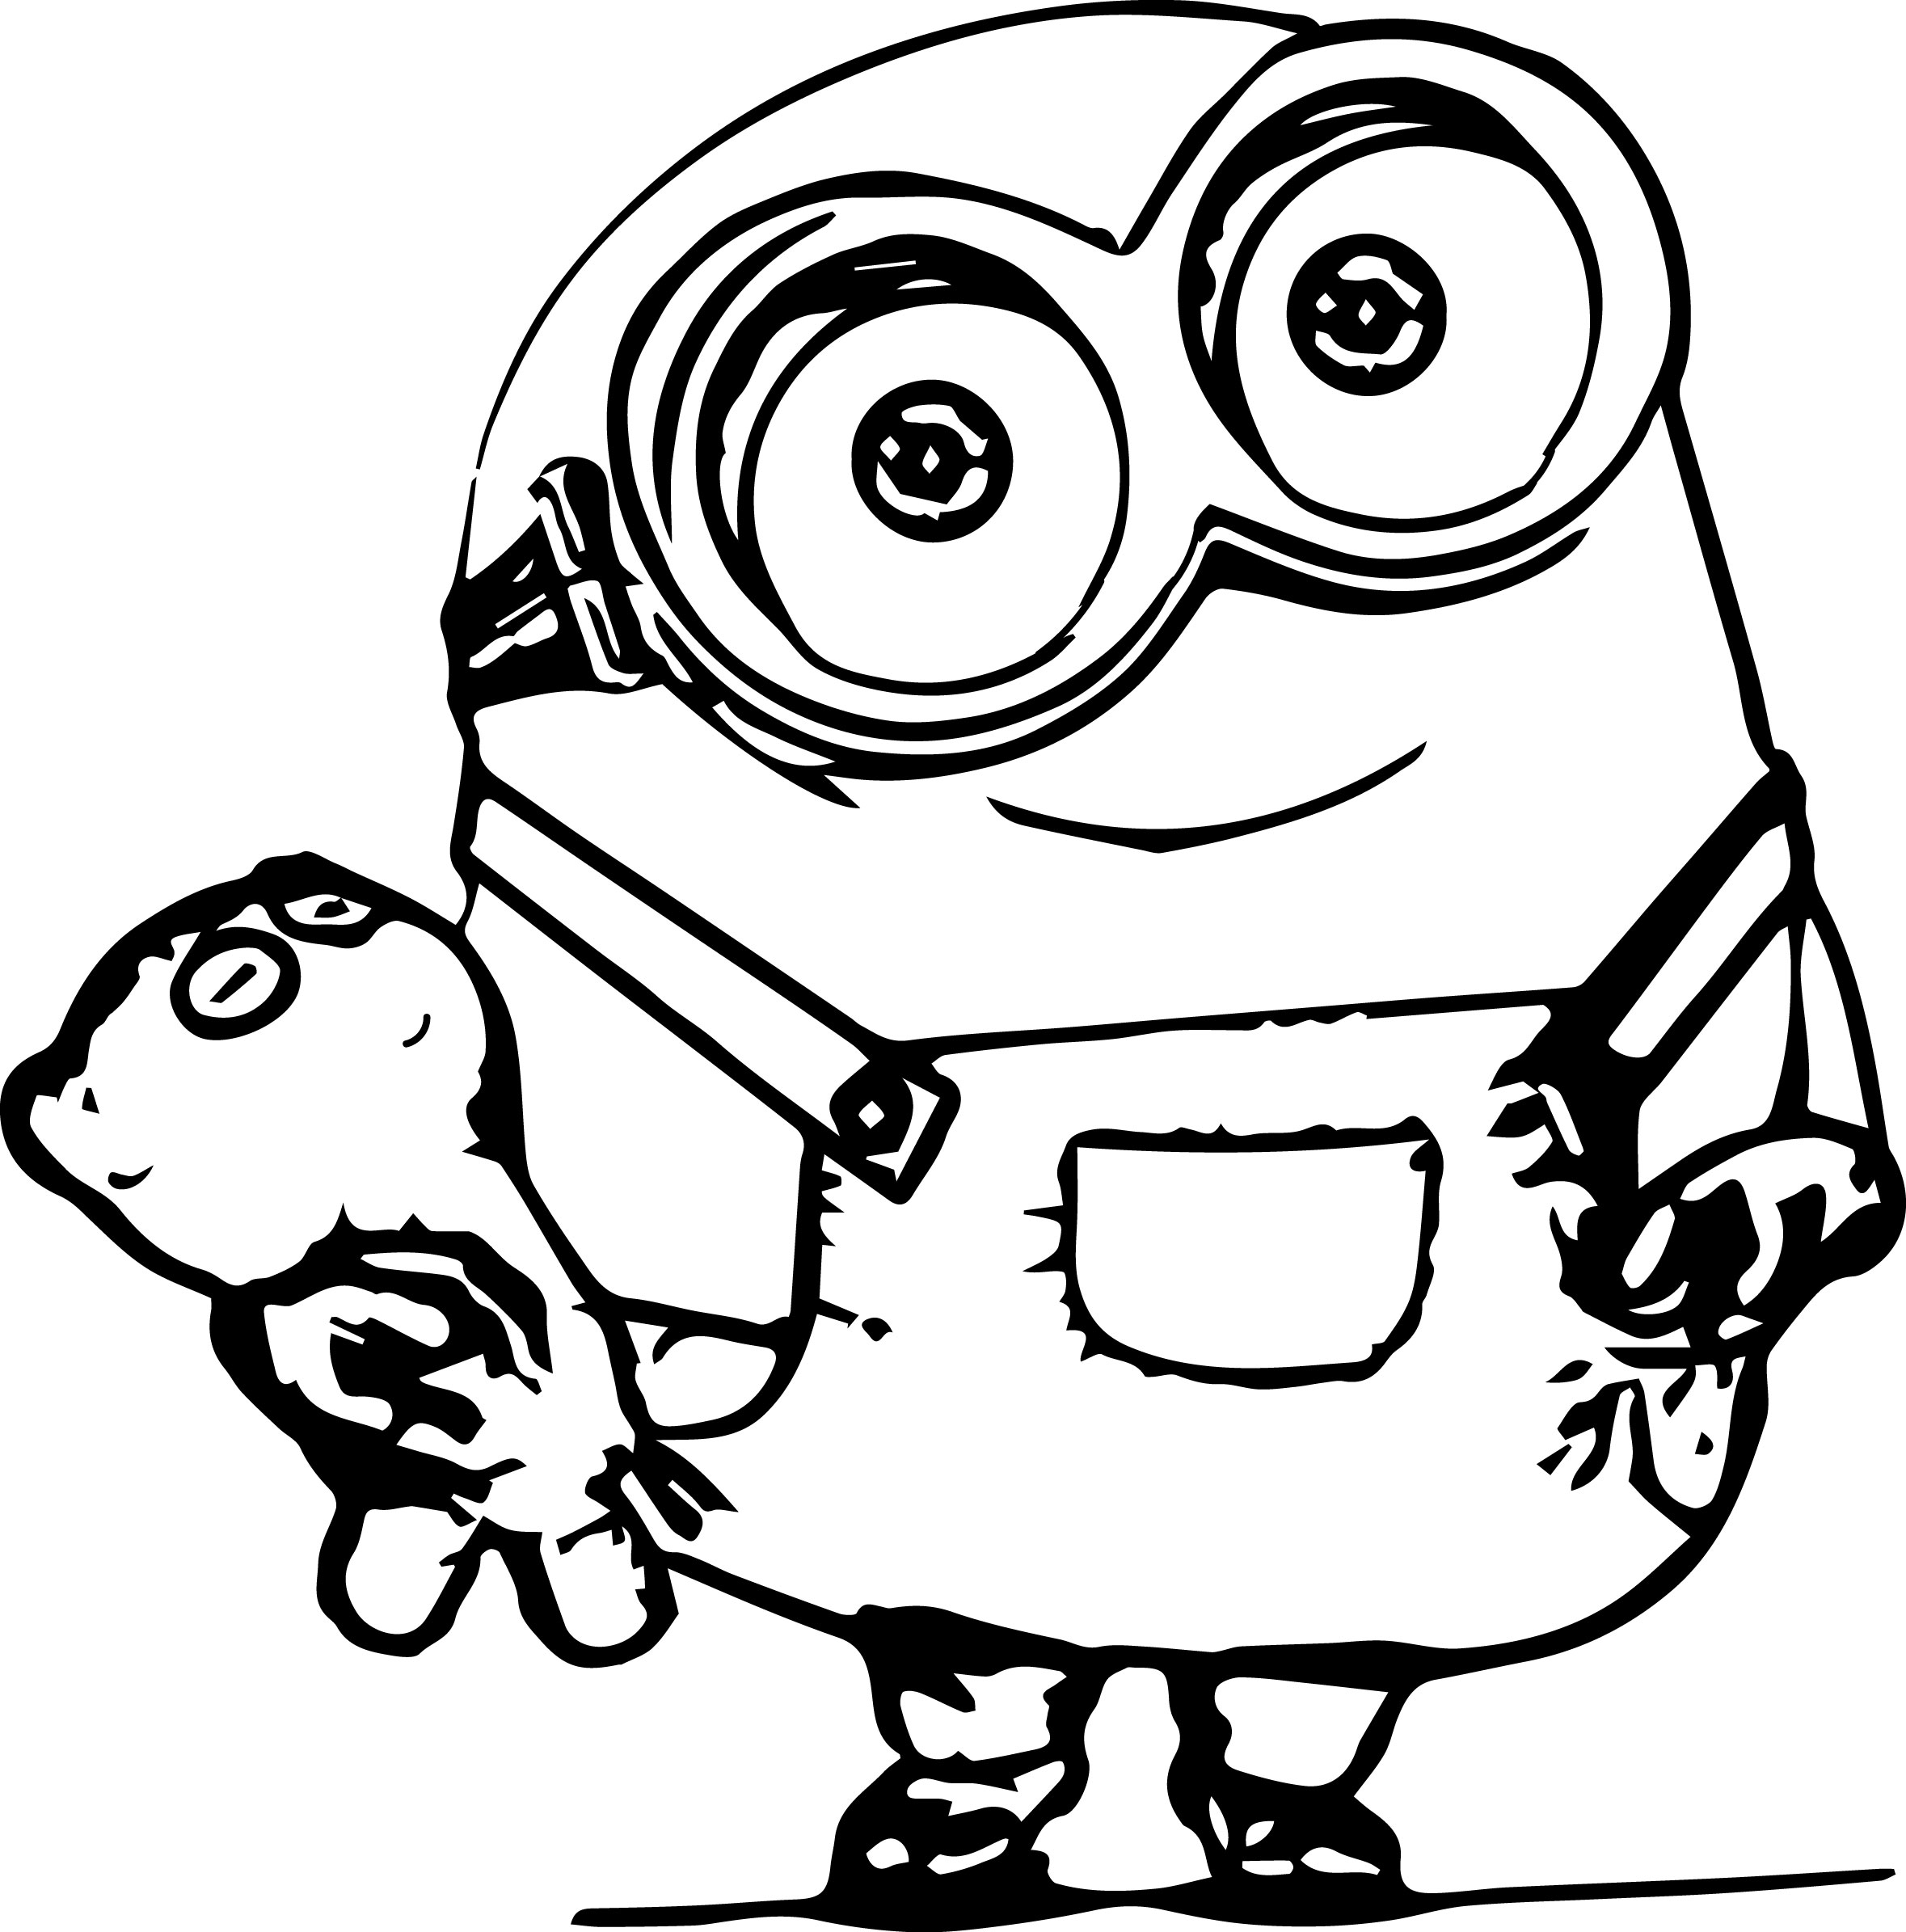 minion coloring pictures minions free to color for children minions kids coloring pictures minion coloring